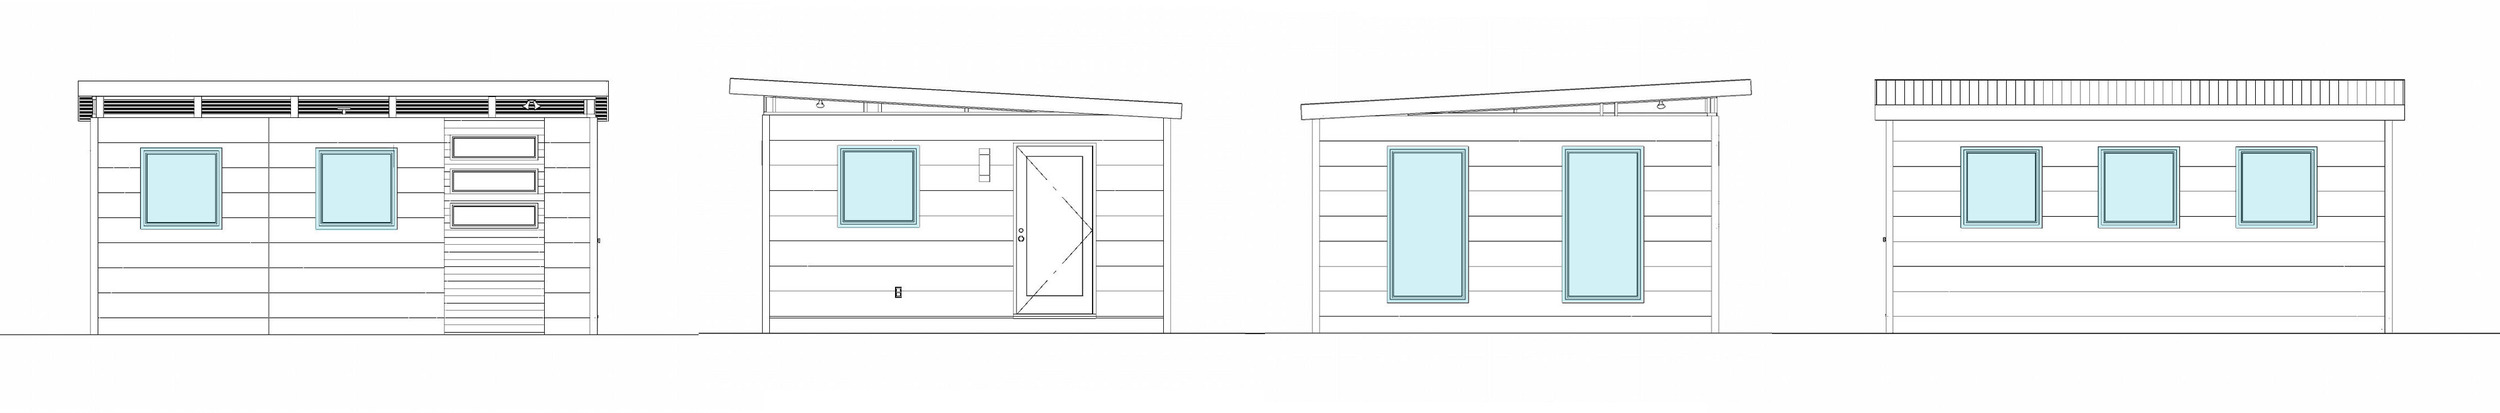 Side Entry Window Placement Option